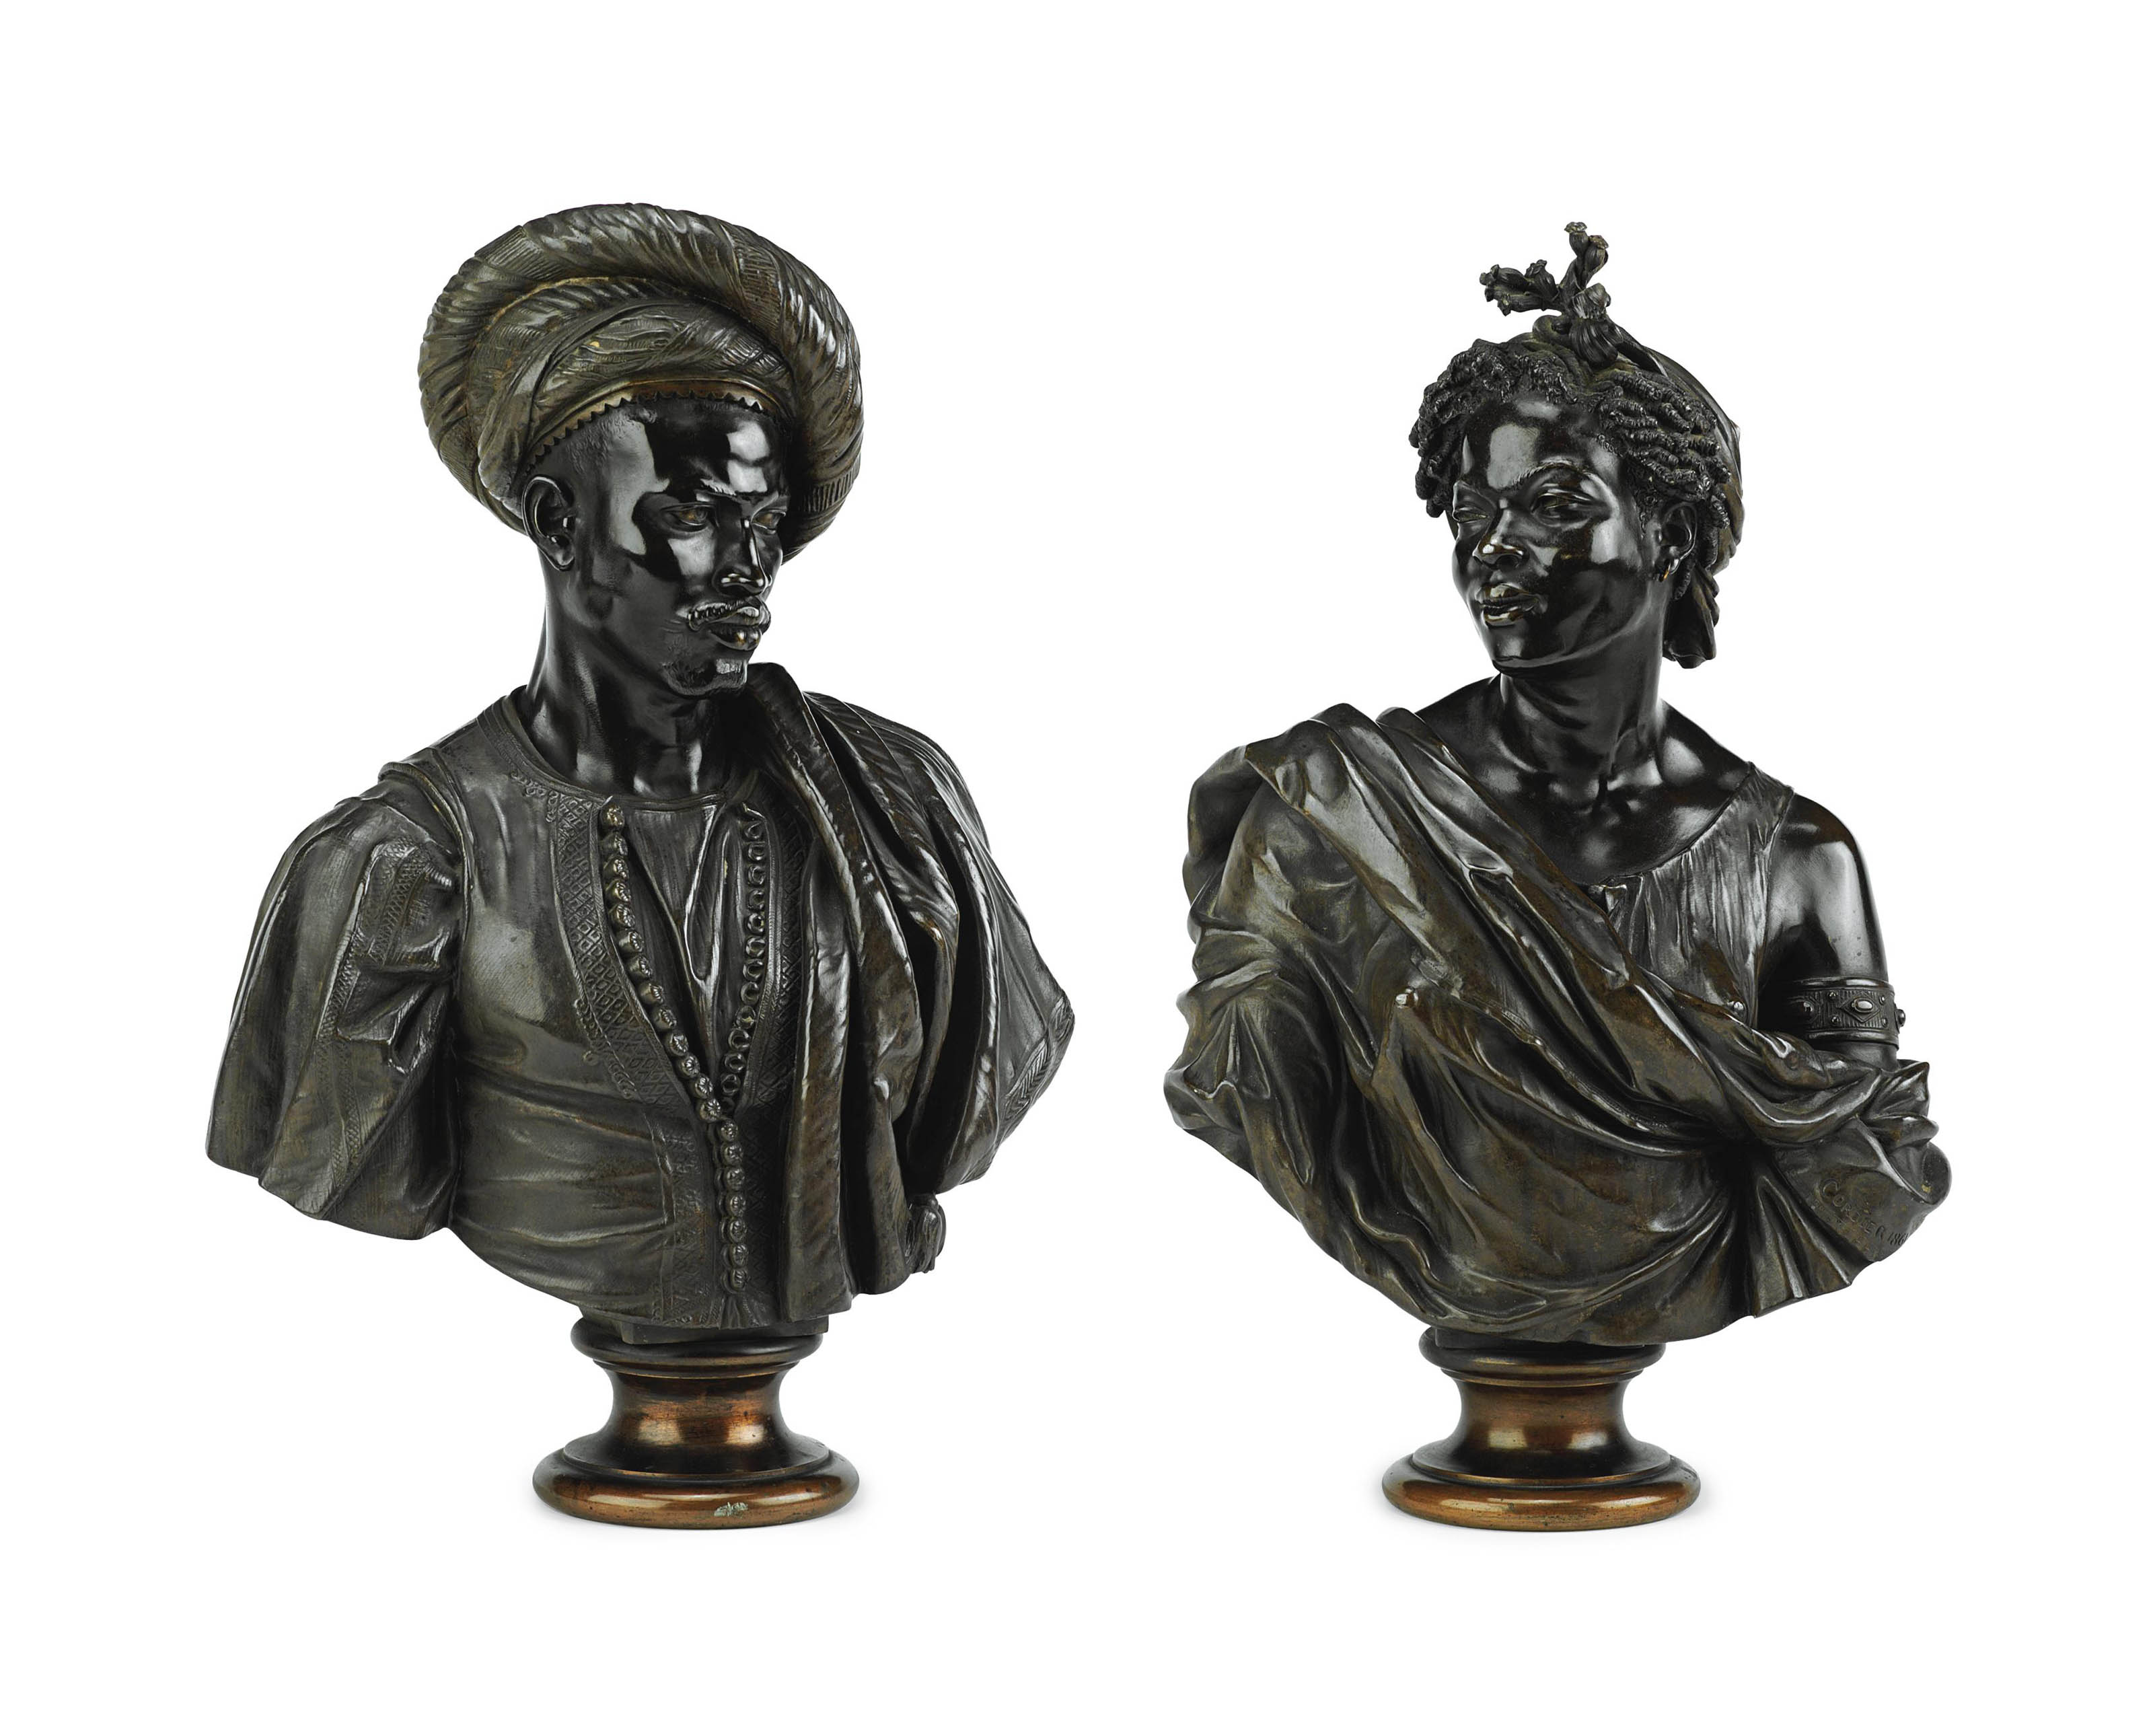 A PAIR OF FRENCH BRONZE BUSTS OF 'CAPRESSE DES COLONIES' AND 'NEGRE DU SOUDAN'